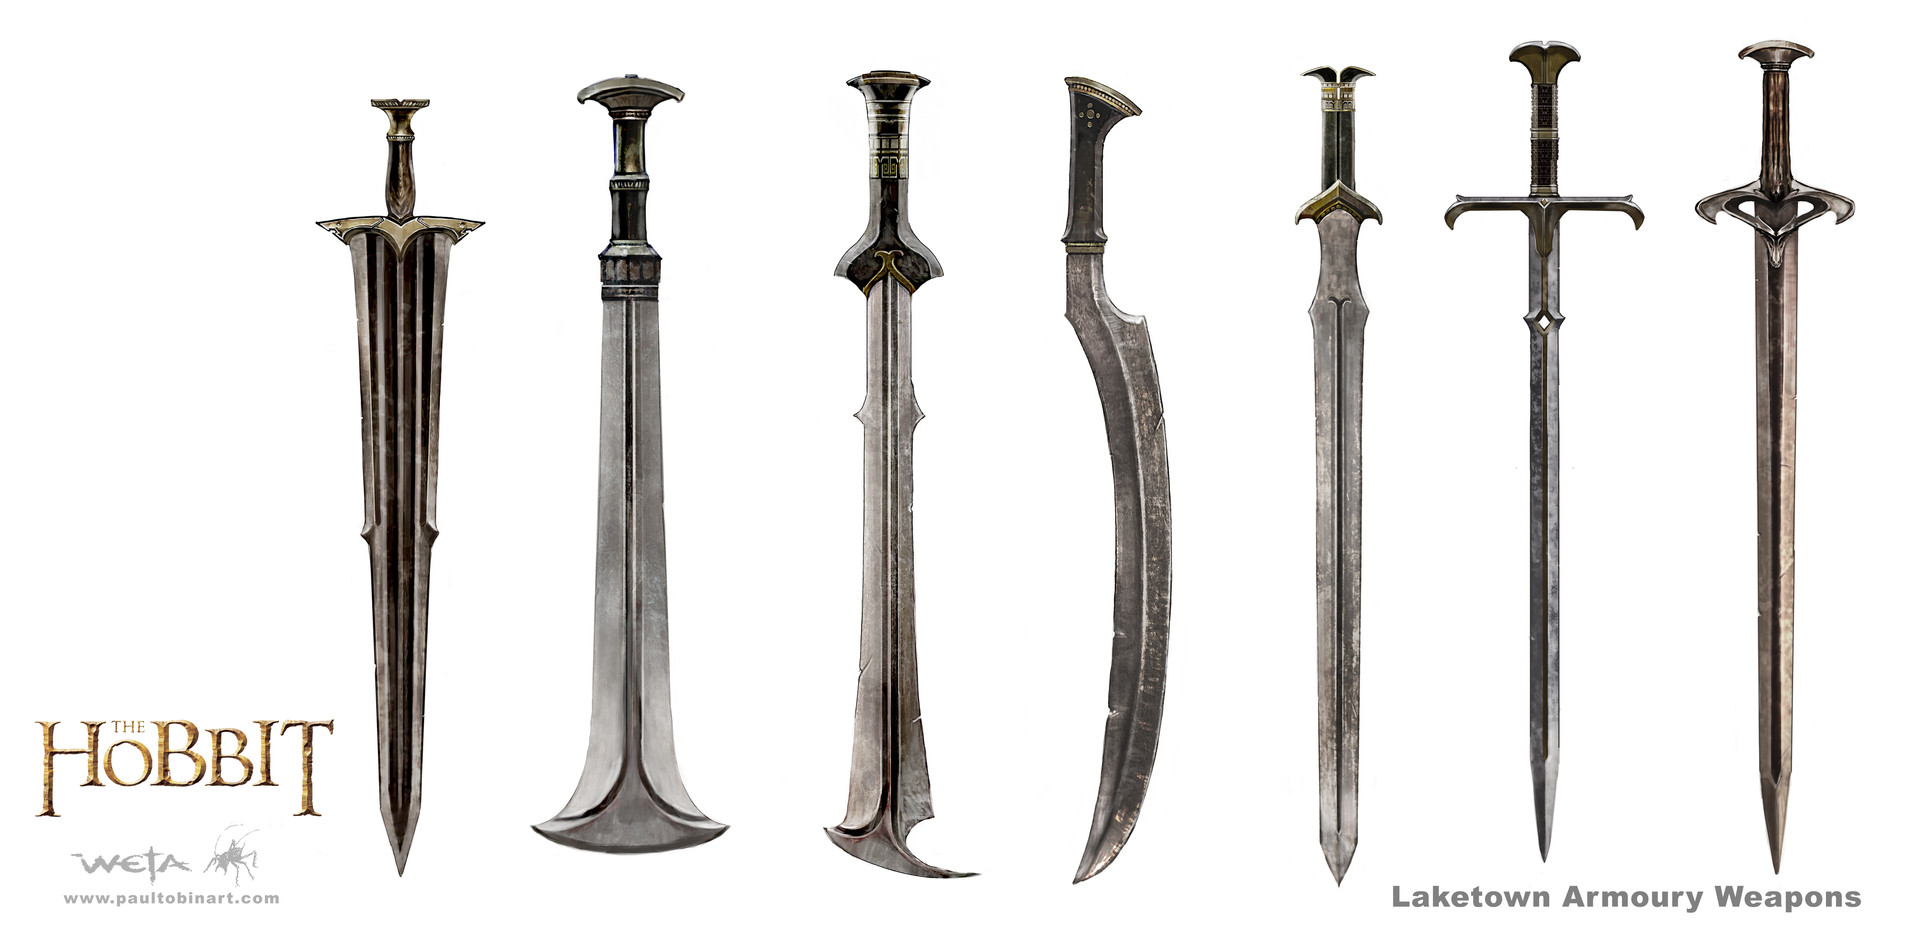 Paul tobin hobbit laketown weapons tobin